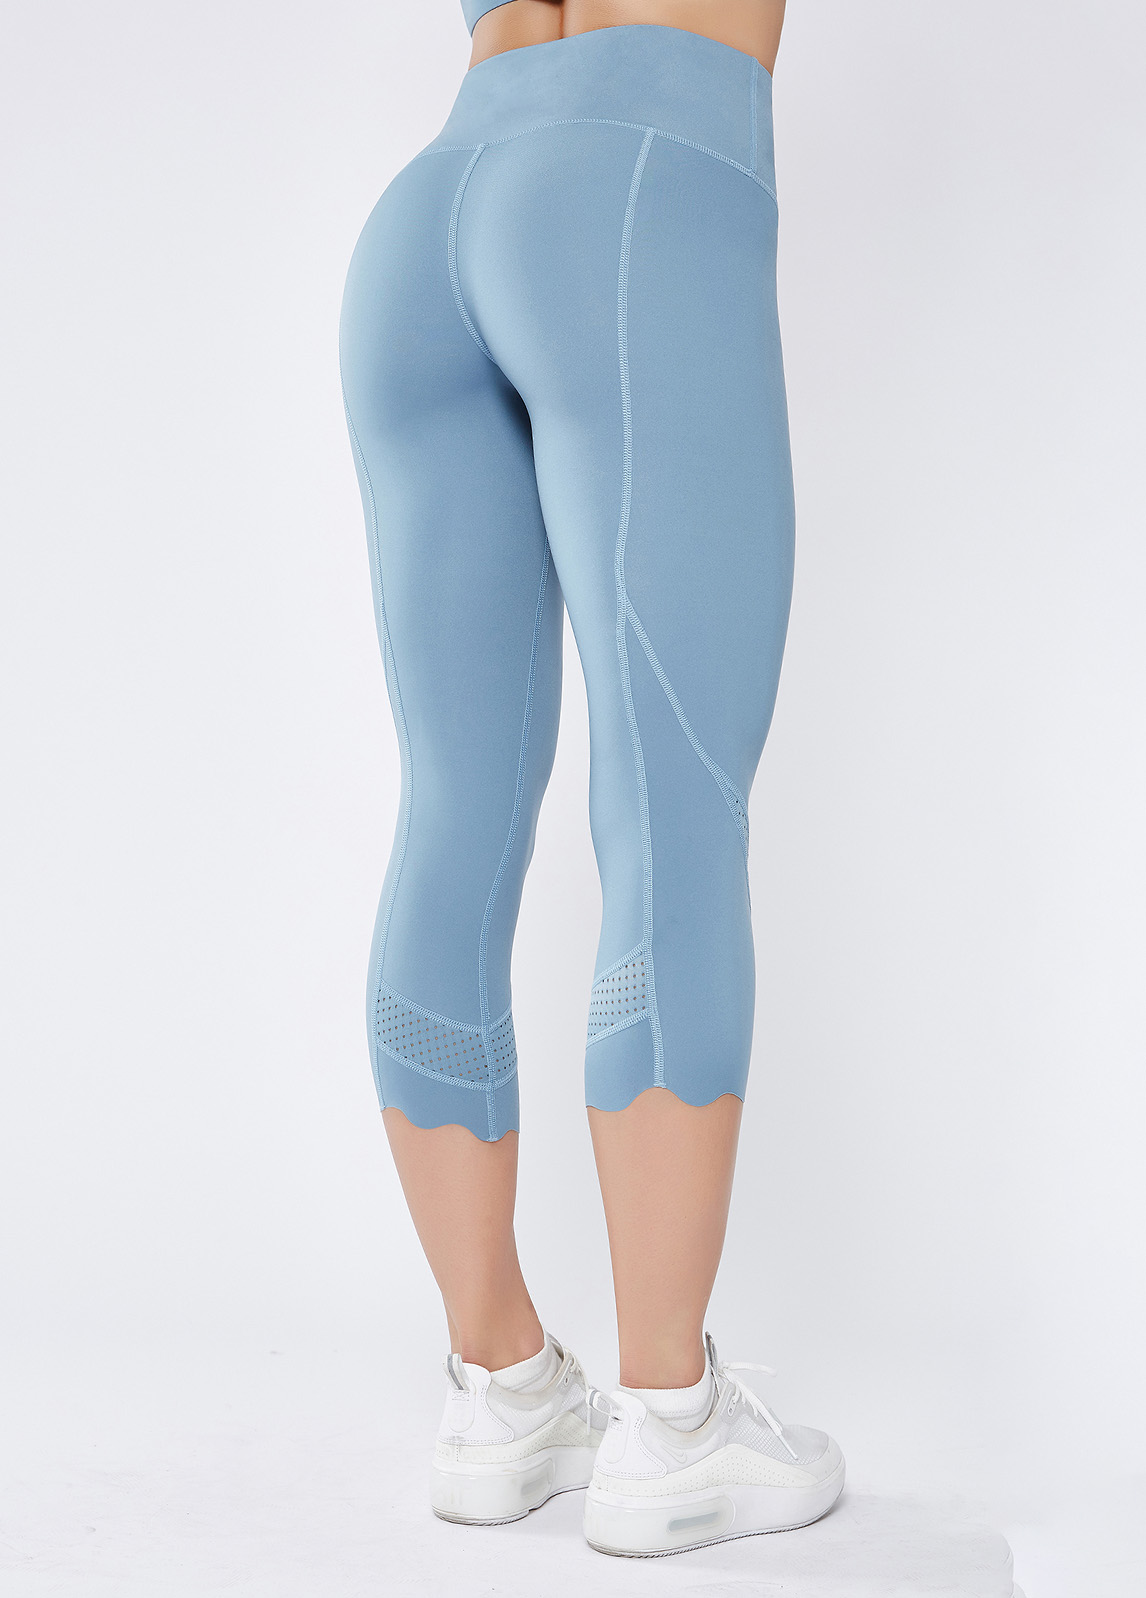 High Waist Quick-drying Stretch Breathable Yoga Pants